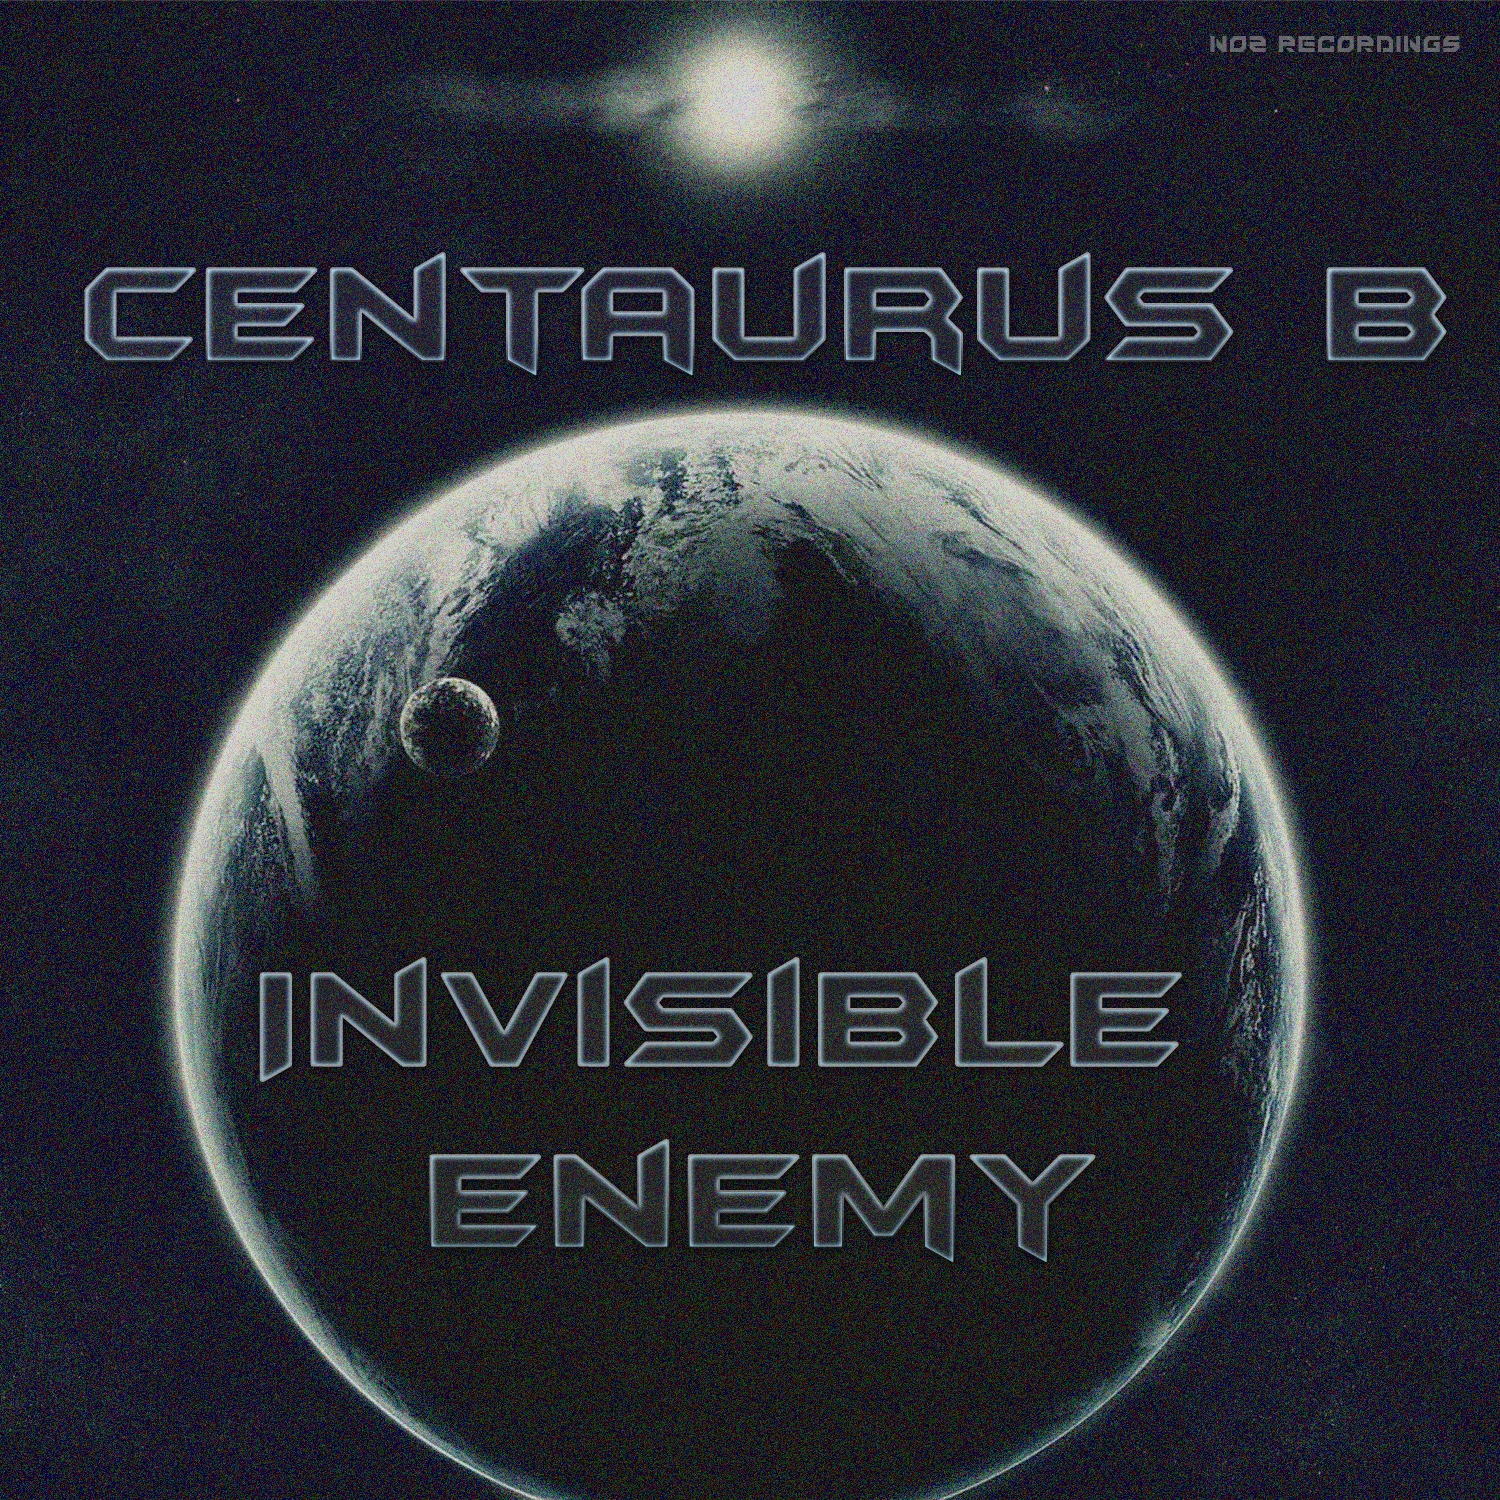 Centaurus B - Invisible Enemy (Original Mix)